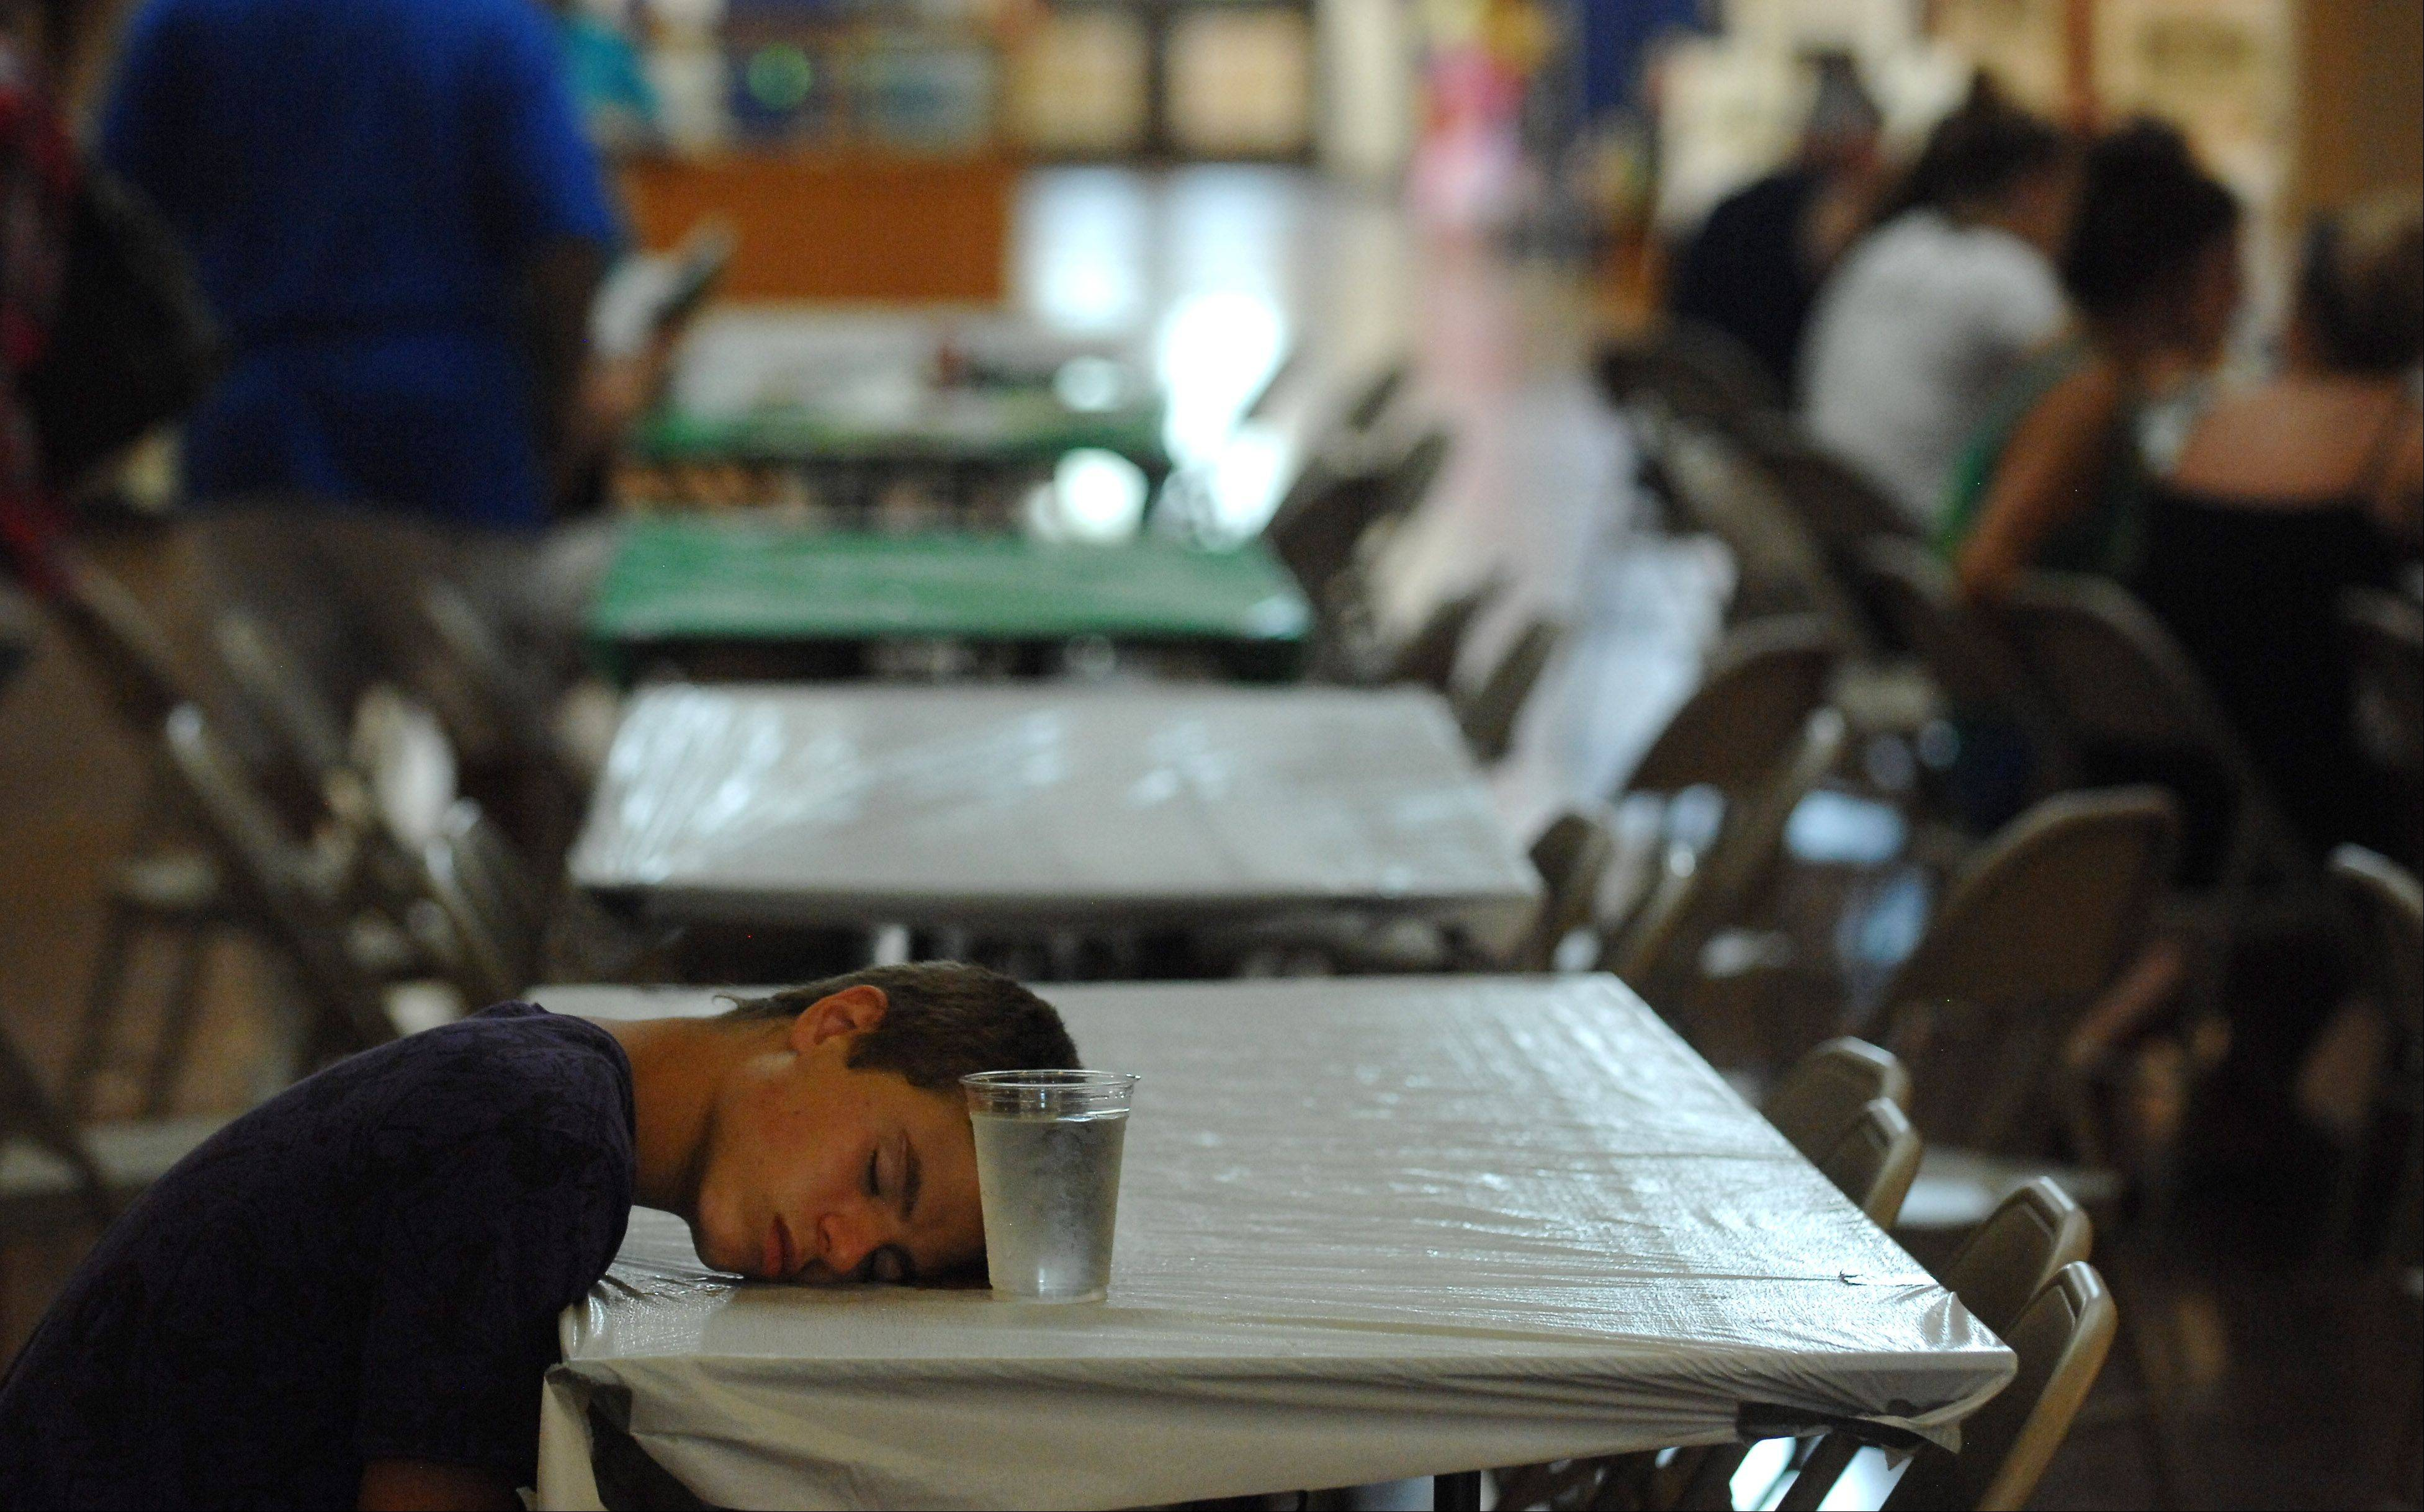 Dakota Purtell, 15, of Warrenville puts his head down in the air-conditioned hall during day two of the Kane County Fair in St. Charles Thursday. He said he had gone on a couple of rides but the heat made him sick, so he went in to rest his head on a damp napkin.